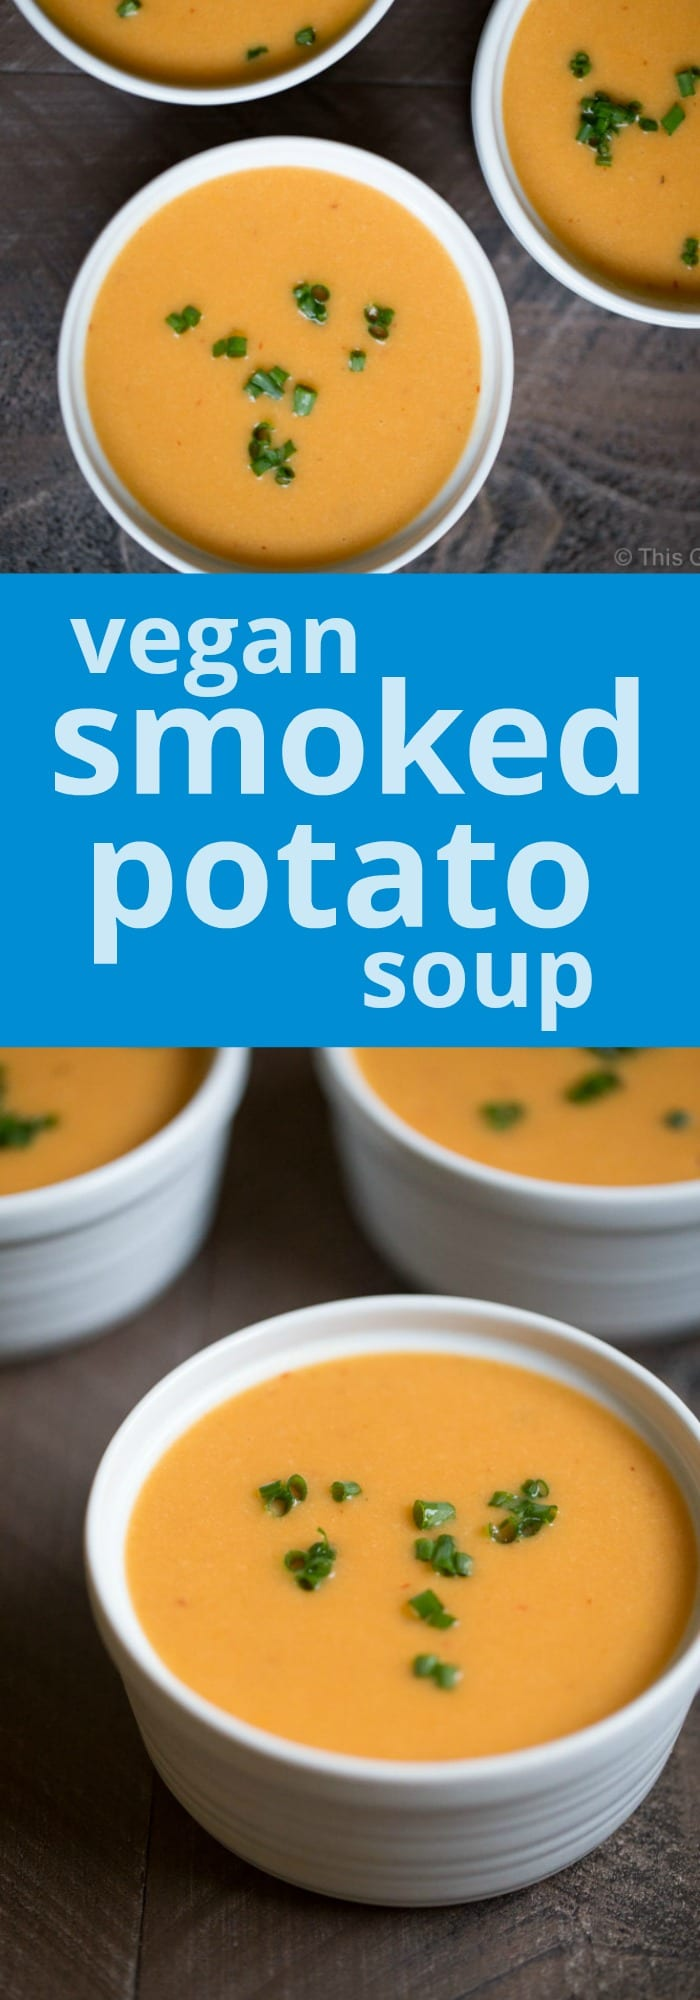 Vegan Smoked Potato Soup. The secret to achieving a smoky soup without using ham or bacon: smoke the potatoes! | This Gal Cooks